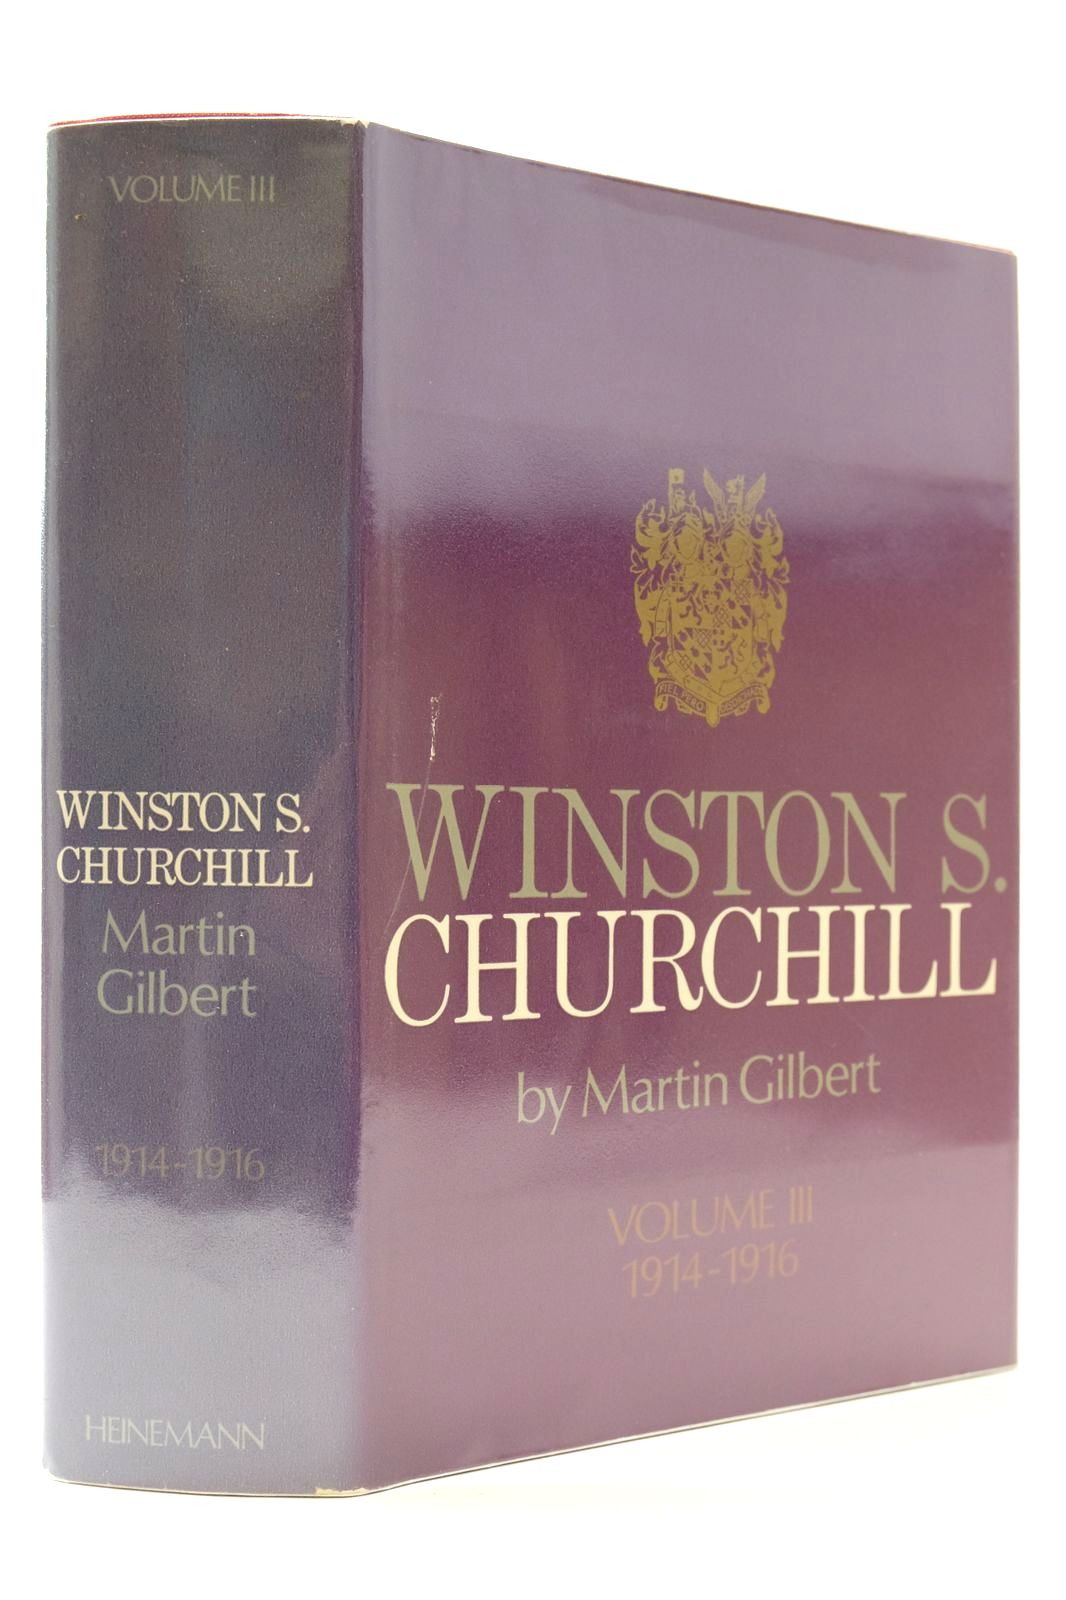 Photo of WINSTON S. CHURCHILL VOLUME III 1914-1916 written by Gilbert, Martin published by Heinemann (STOCK CODE: 2132685)  for sale by Stella & Rose's Books